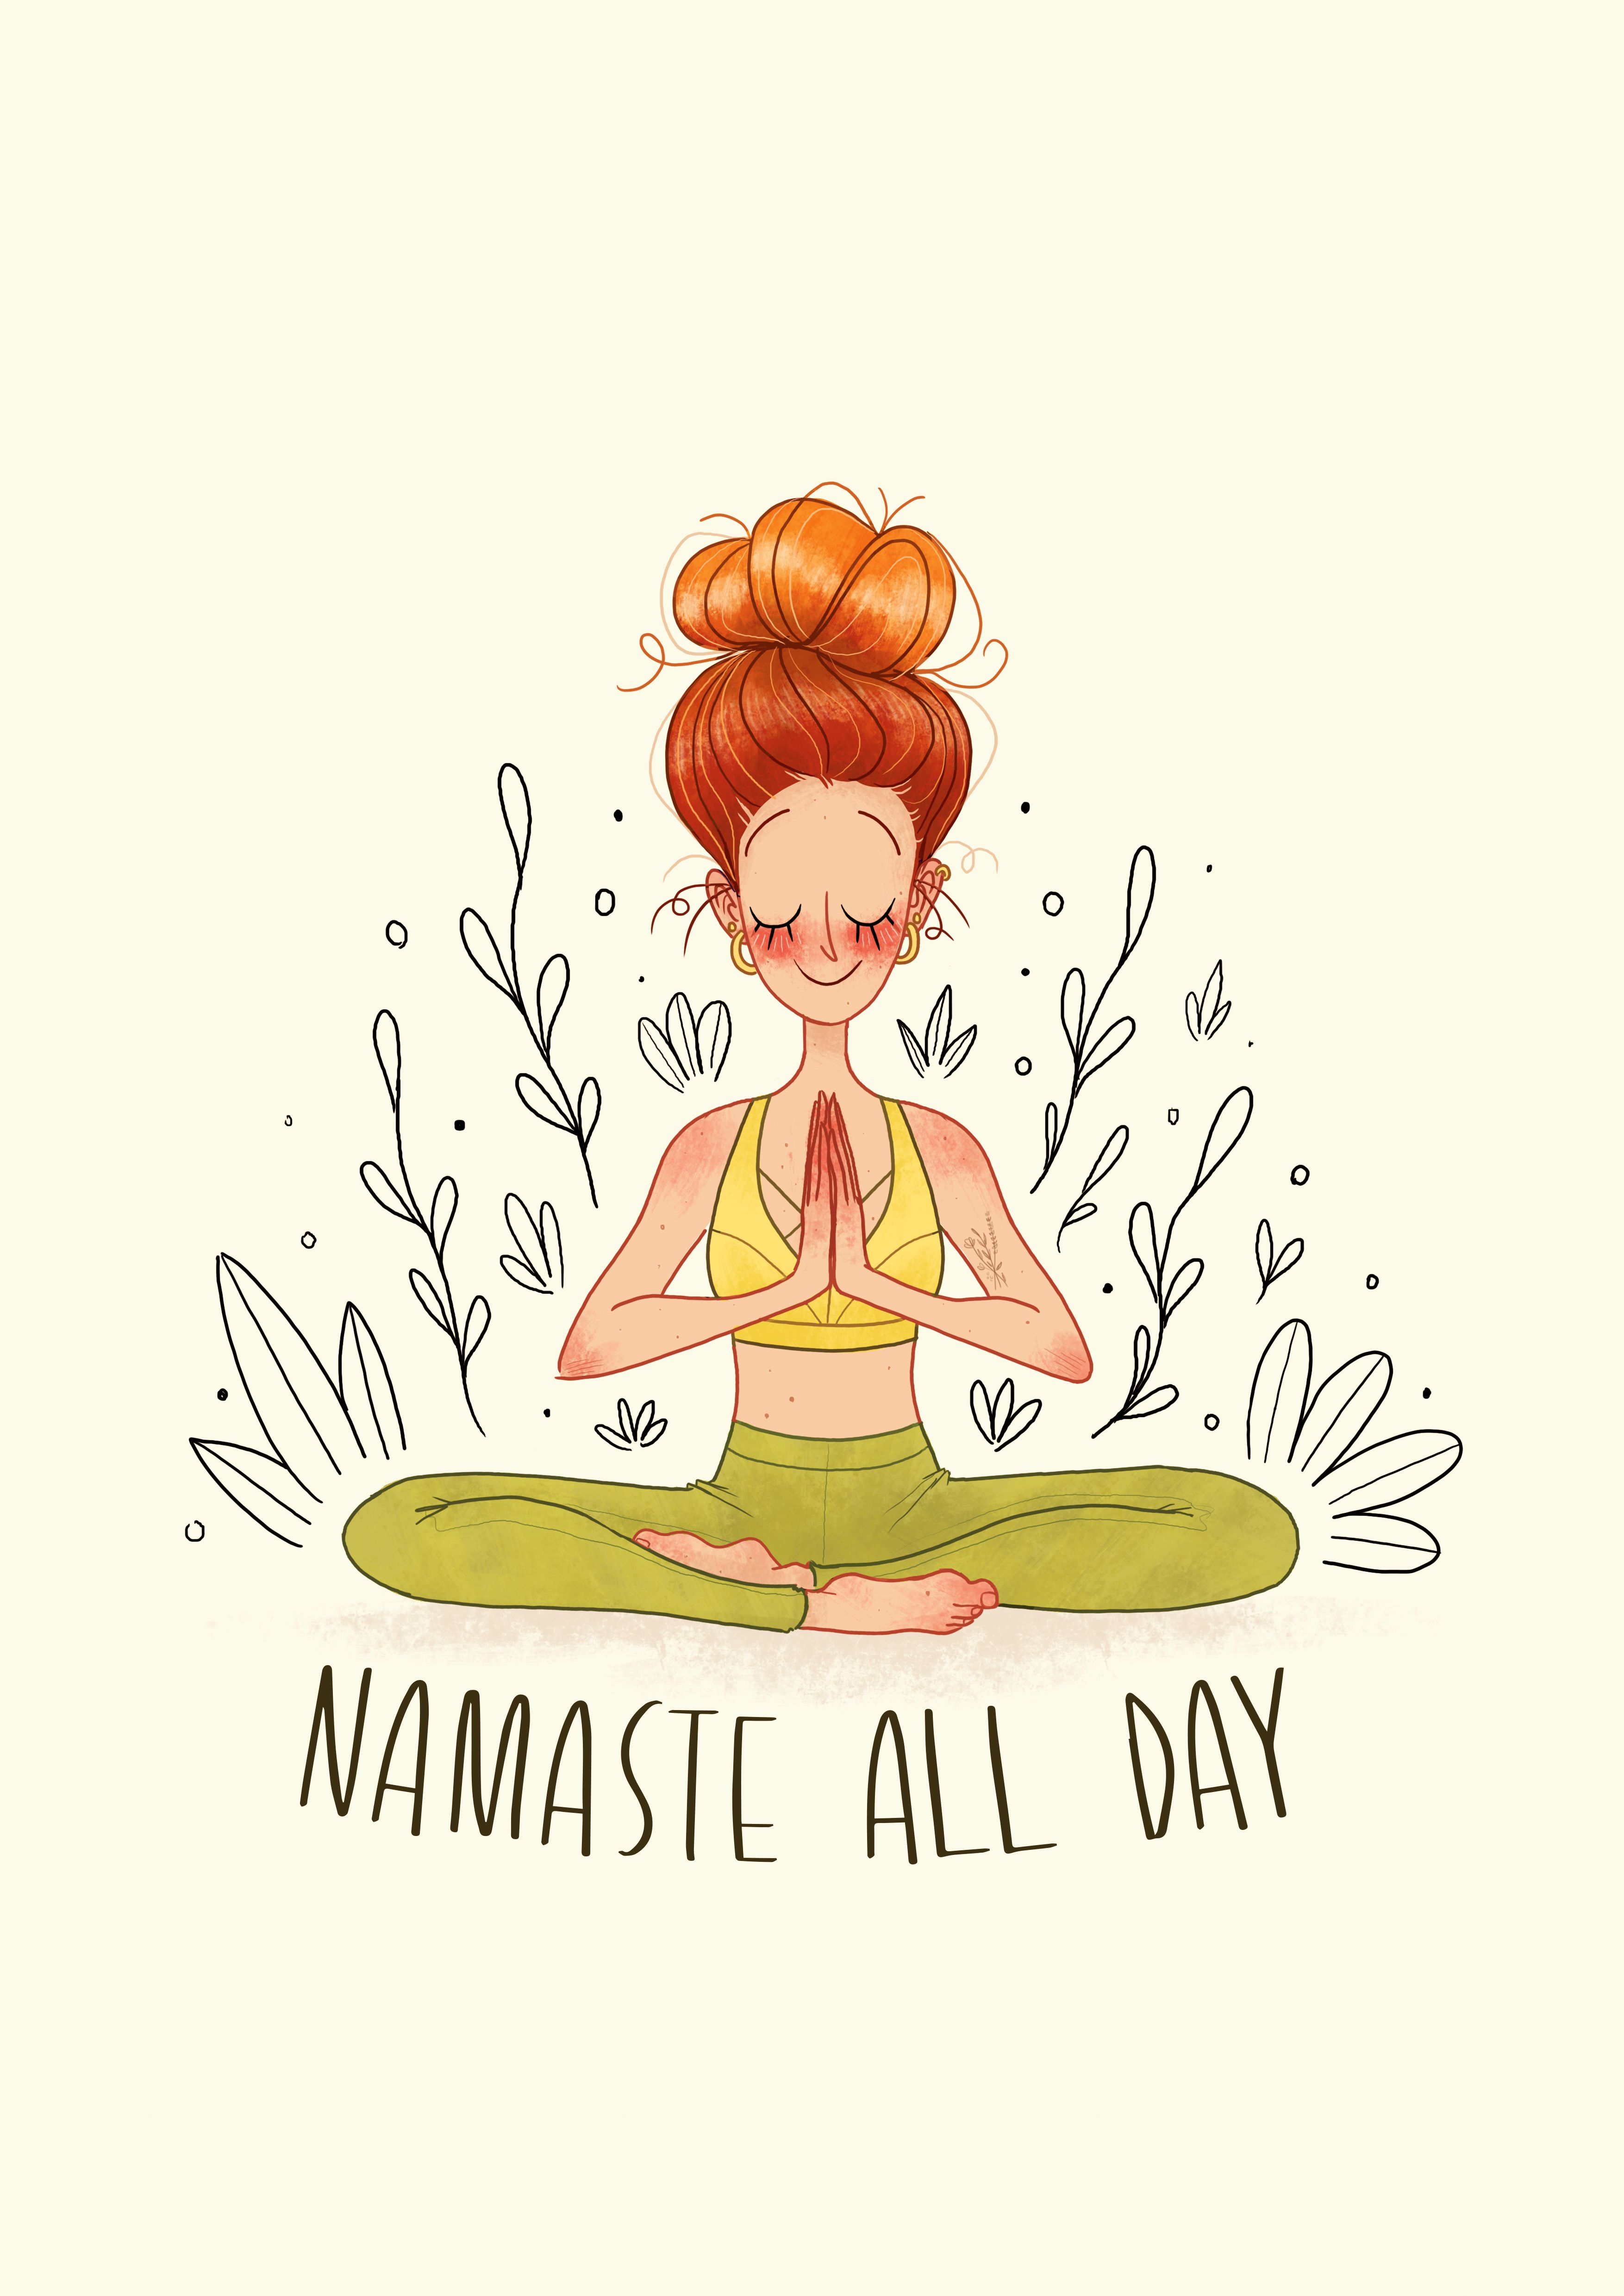 Namaste All Day Yoga Illustration By Cacotte Https Cacotte